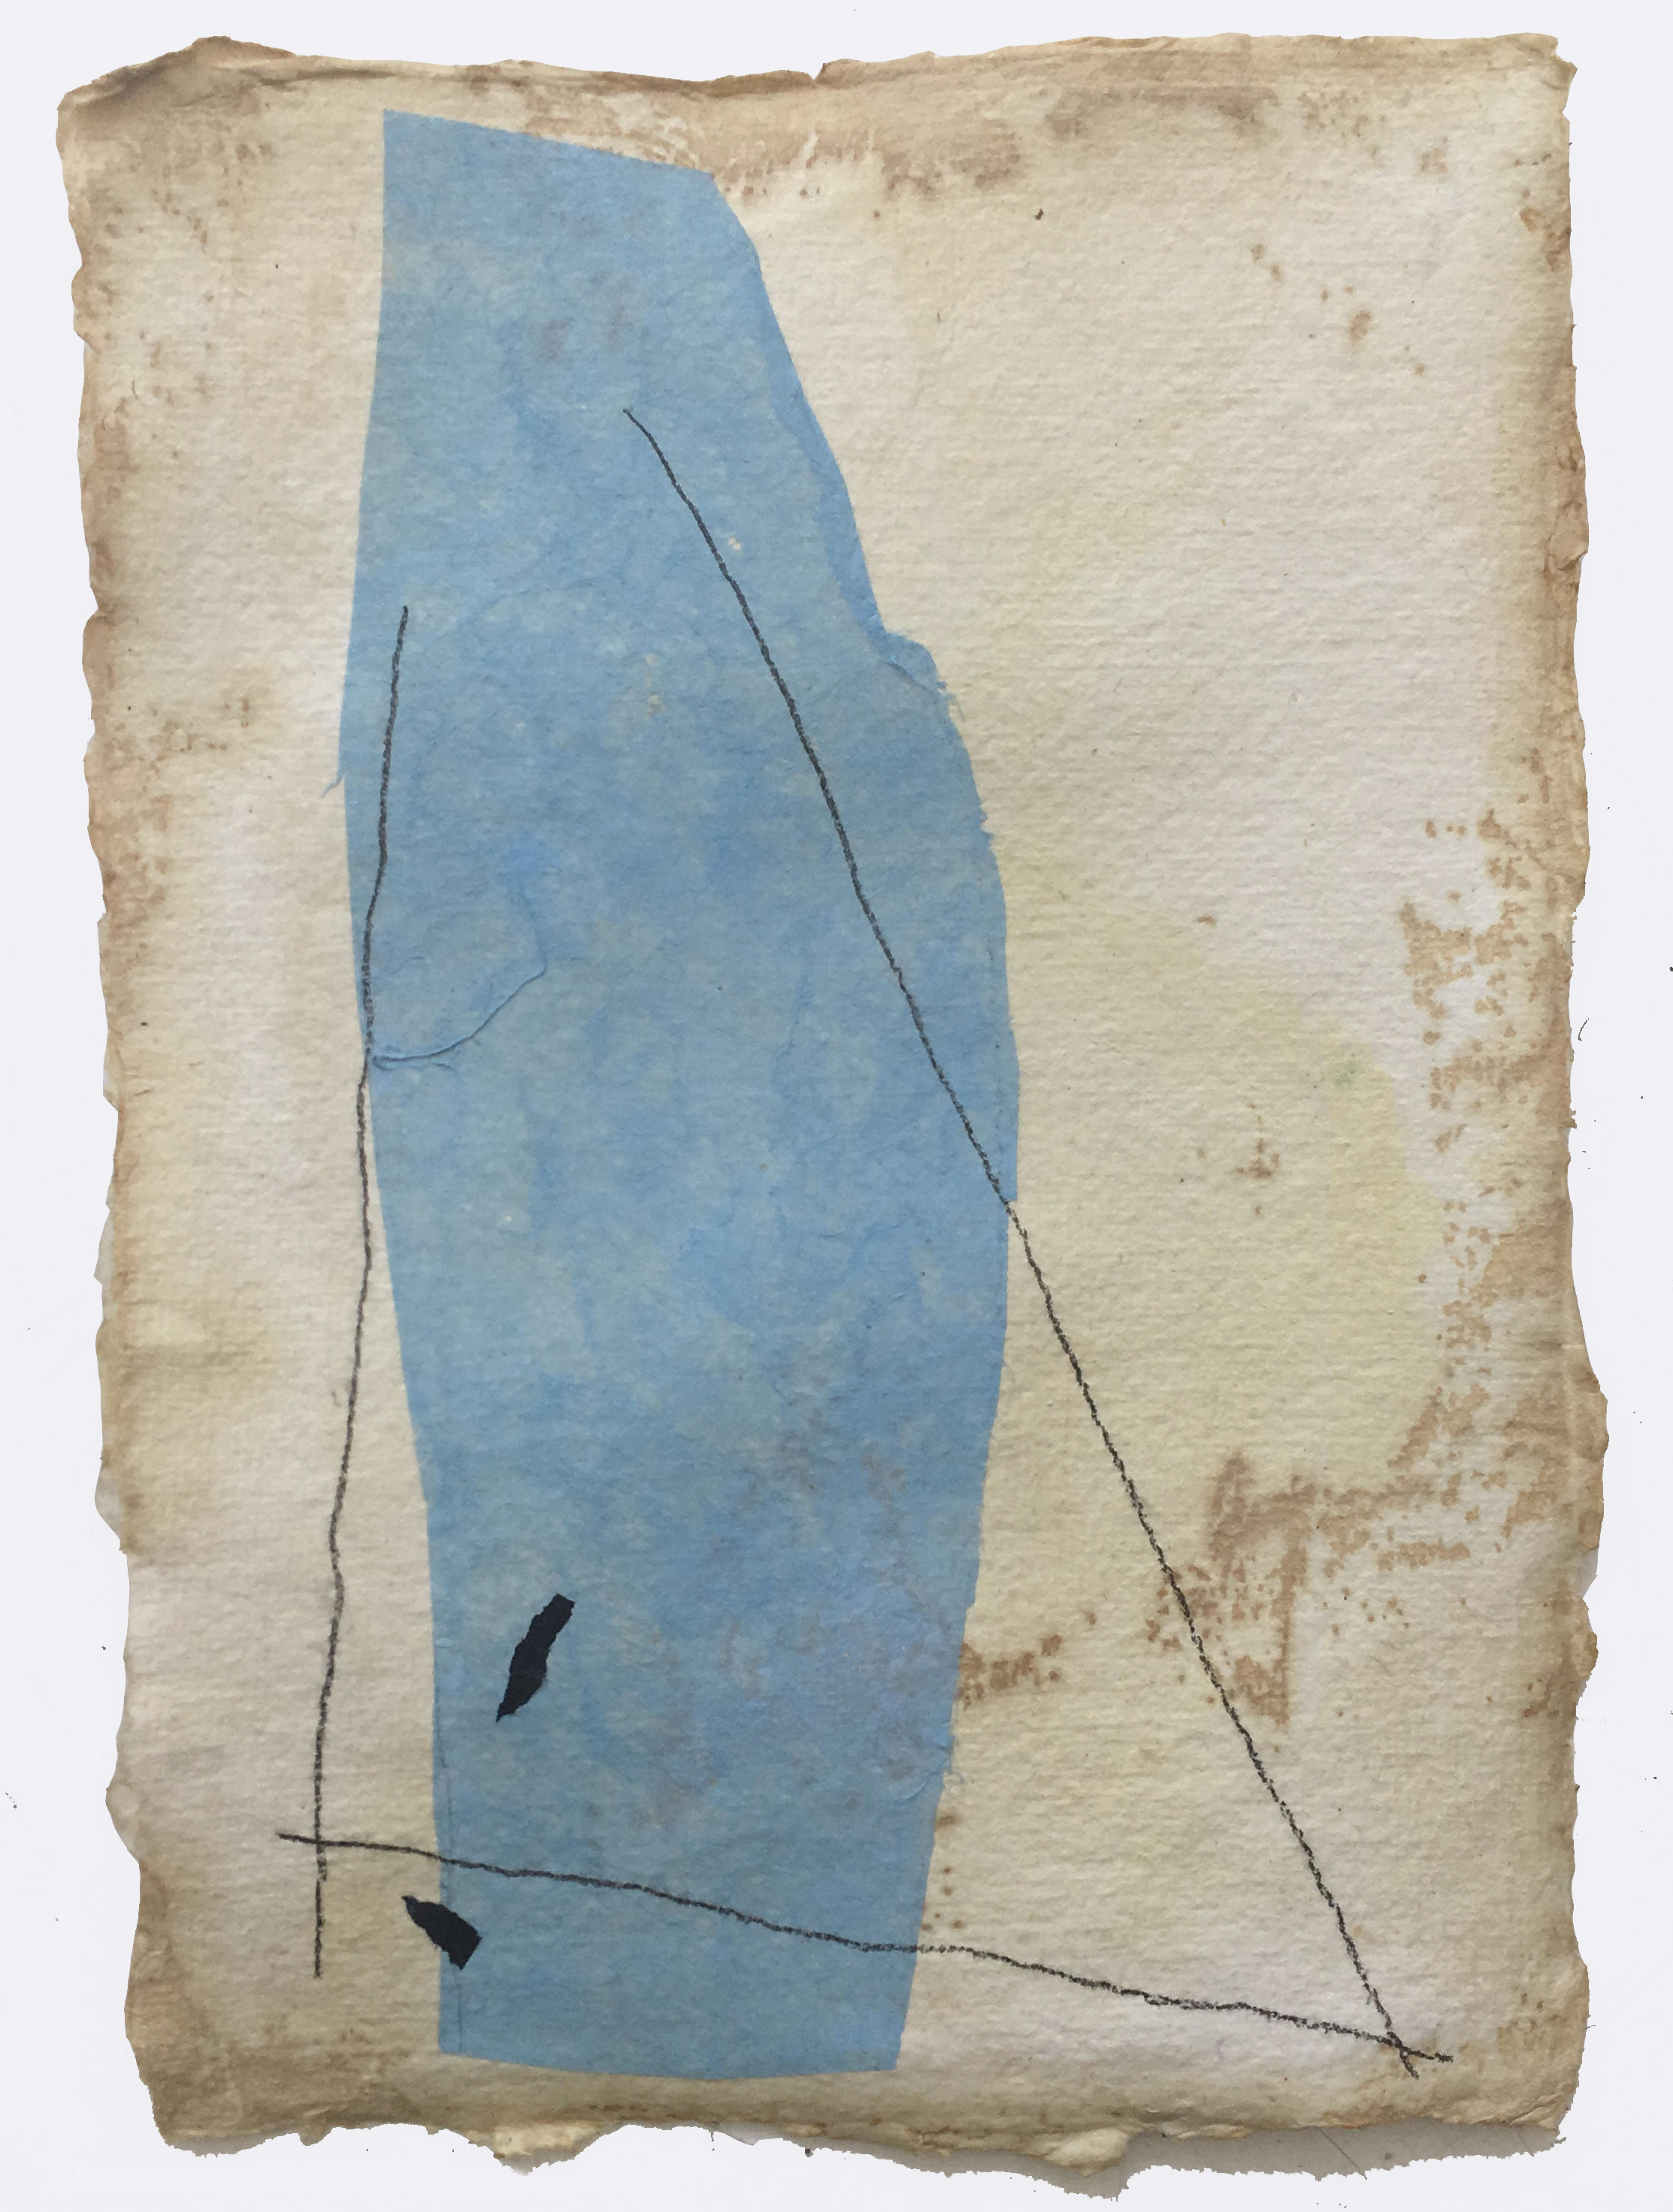 Pale Blue with Lines and Flecks on Tan, 2018, mixed media on coffee-dyed watercolor paper, 8.25 x 6.25 in, SOLD